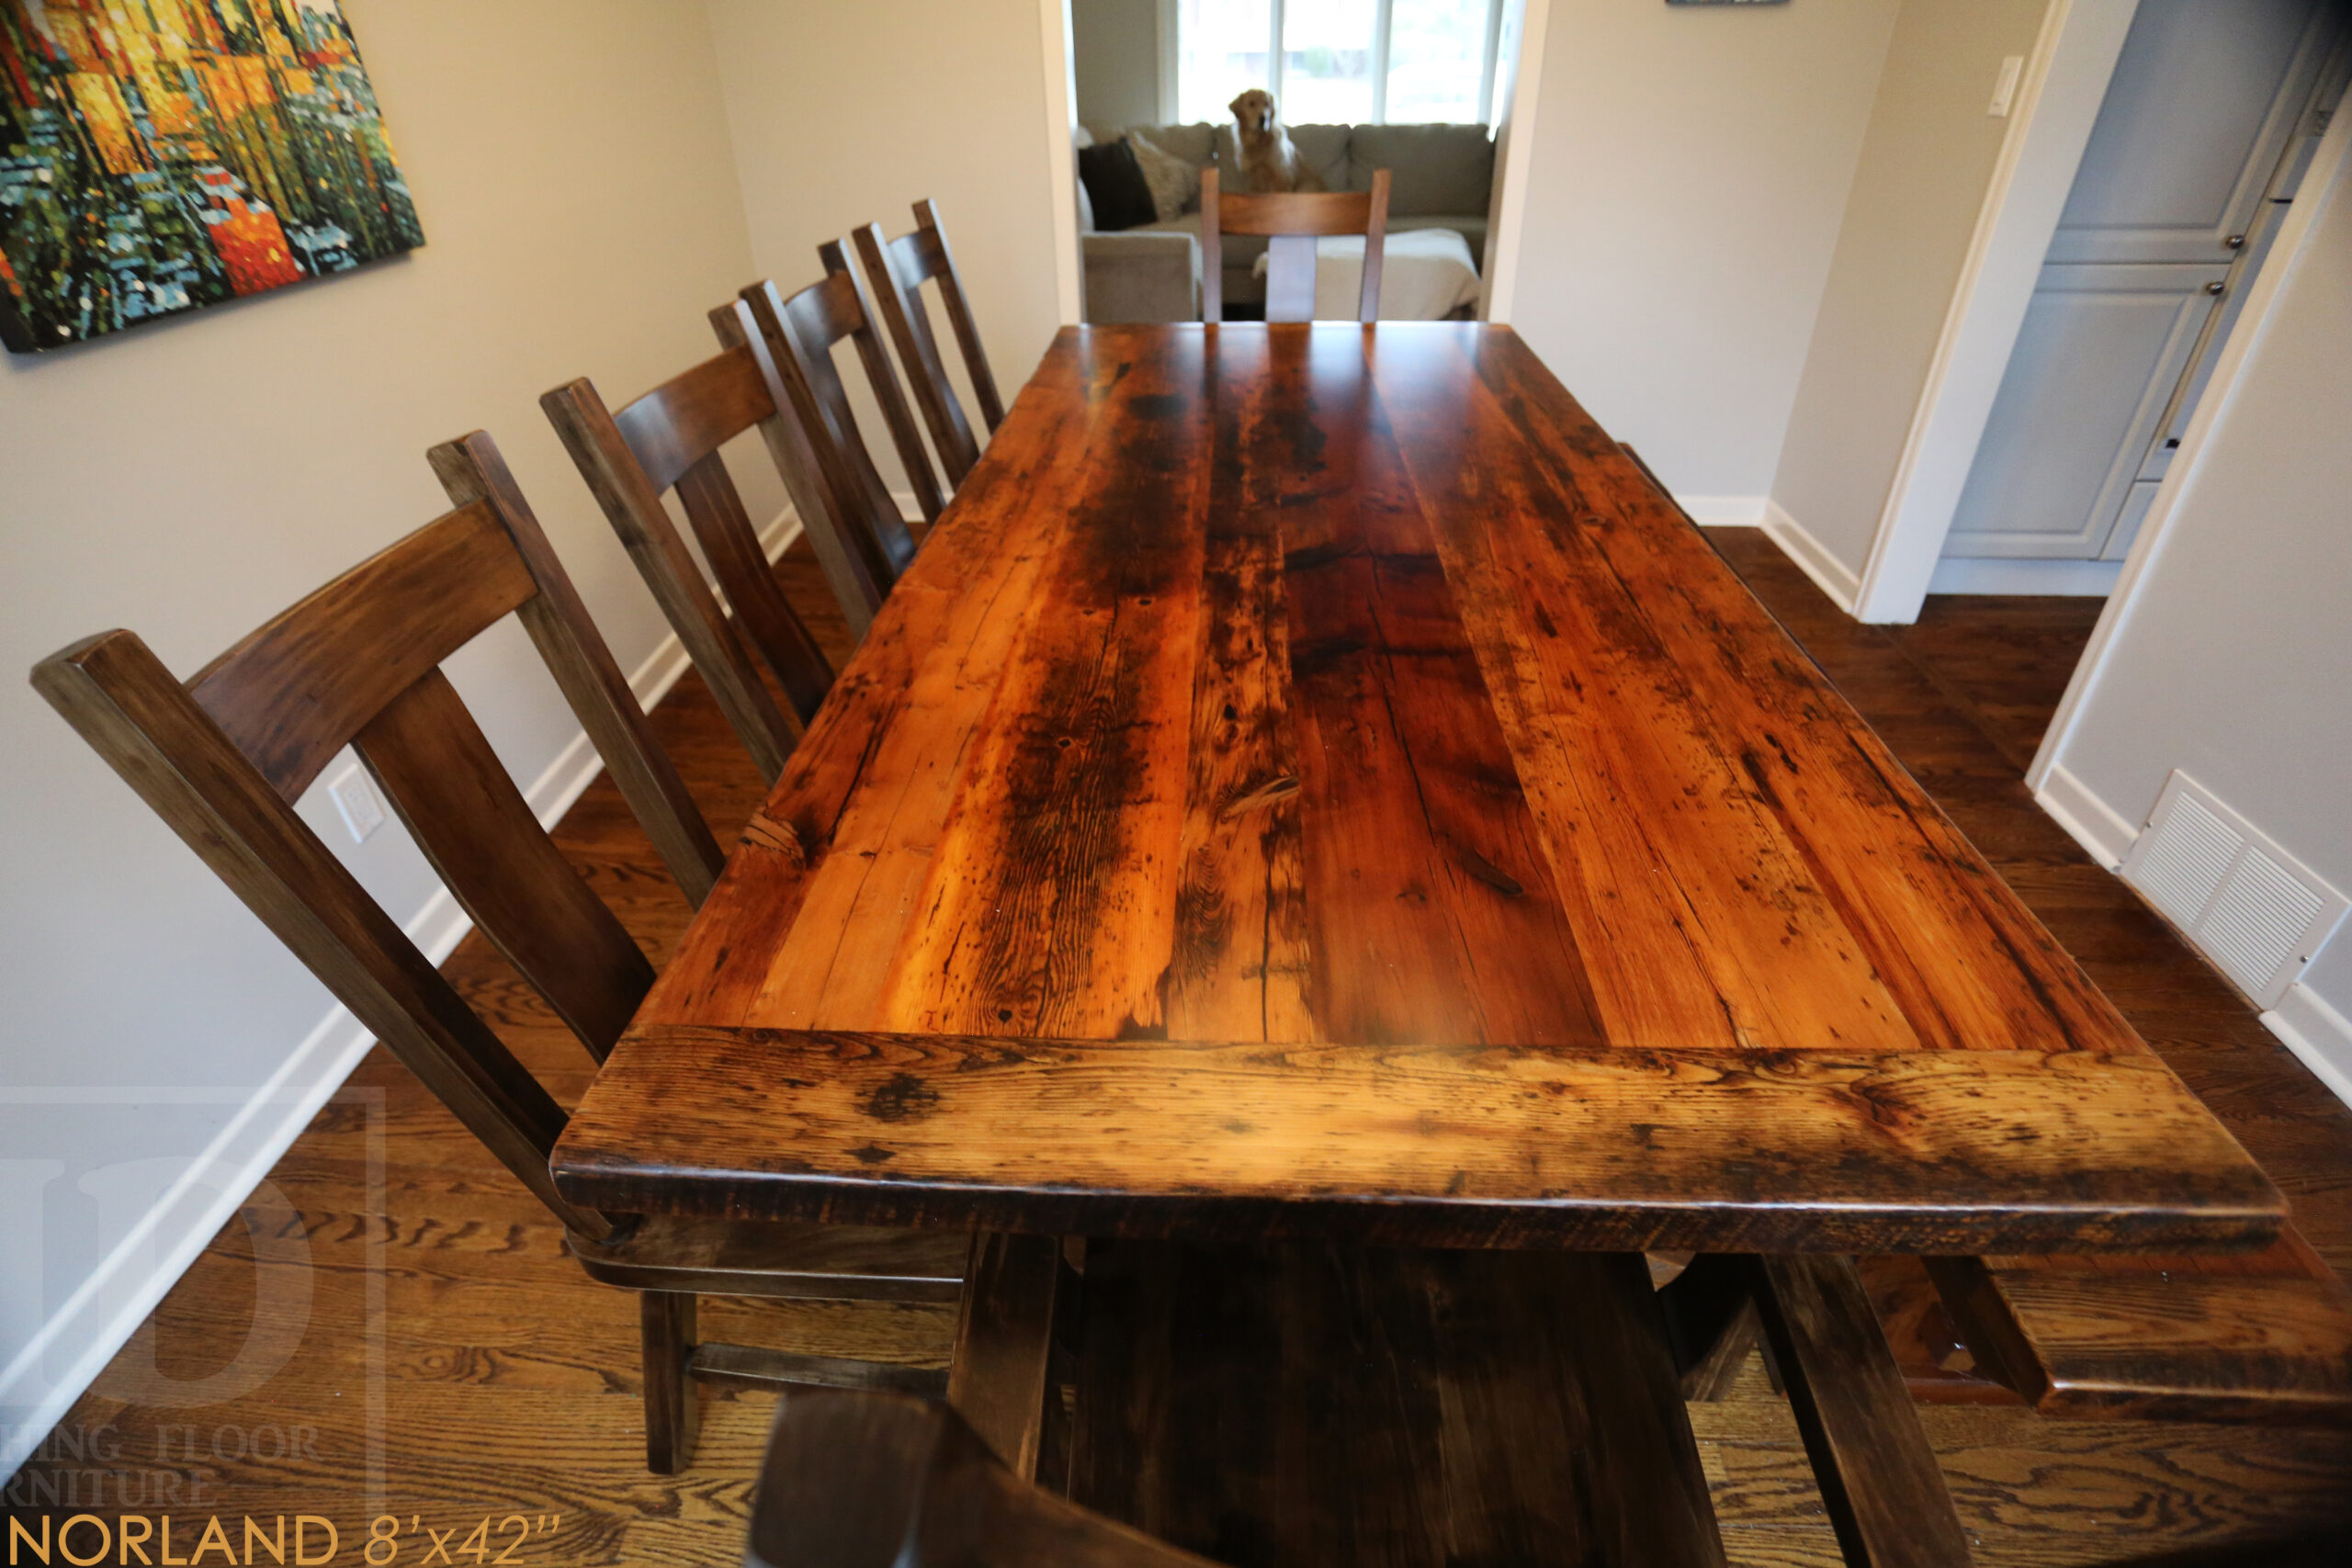 """8' Ontario Barnwood Table we made for a Burlington, Ontario home - 42"""" wide - Sawbuck base - Original edges & distressing maintained - Old growth Hemlock Threshing Floor 2"""" Top - Premium epoxy + satin polyurethane finish - 8' [matching] bench - 6 Plank Back Chairs / Wormy Maple  www.table.ca"""